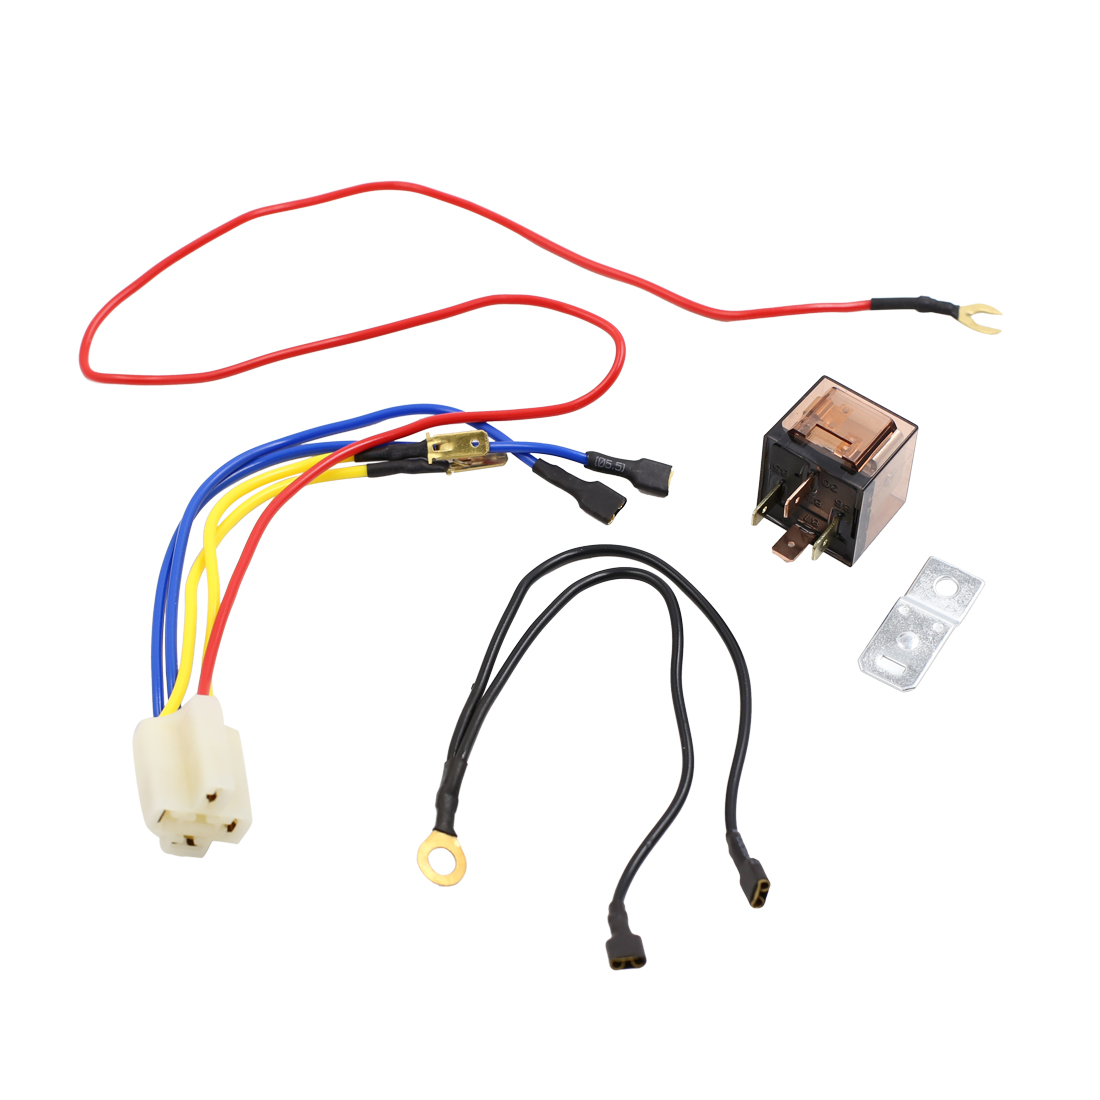 hight resolution of dc 12v 80a motorcycle car truck refit horn speaker wiring harness relay kit walmart com